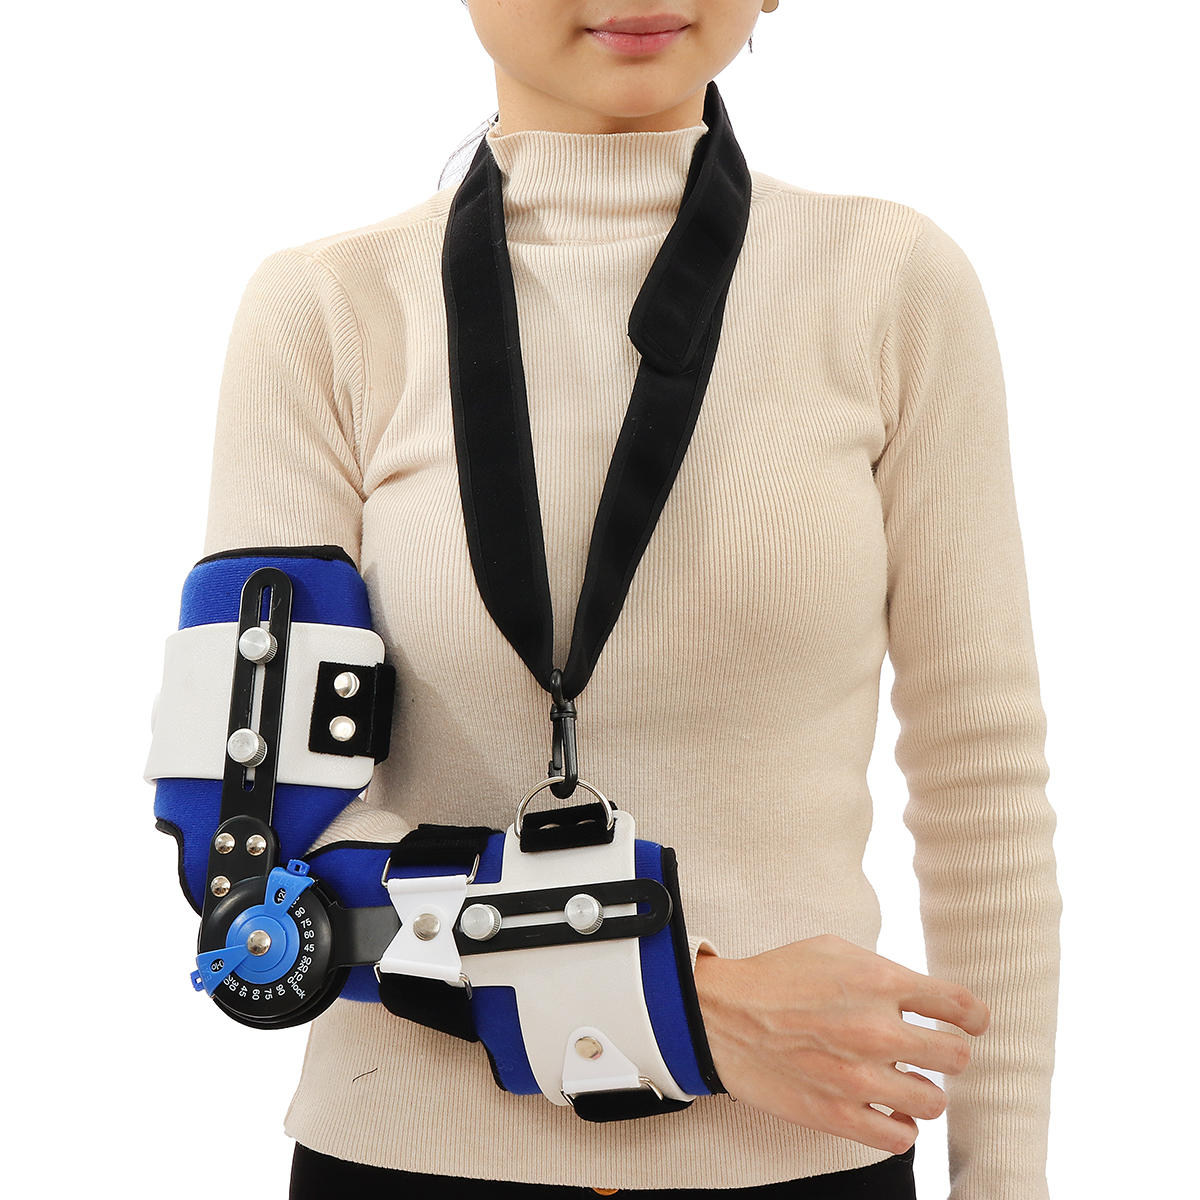 Adjustable Elbow Orthosis Arm Sling Support Brace Fracture Fixation Device Fracture Arm Protector